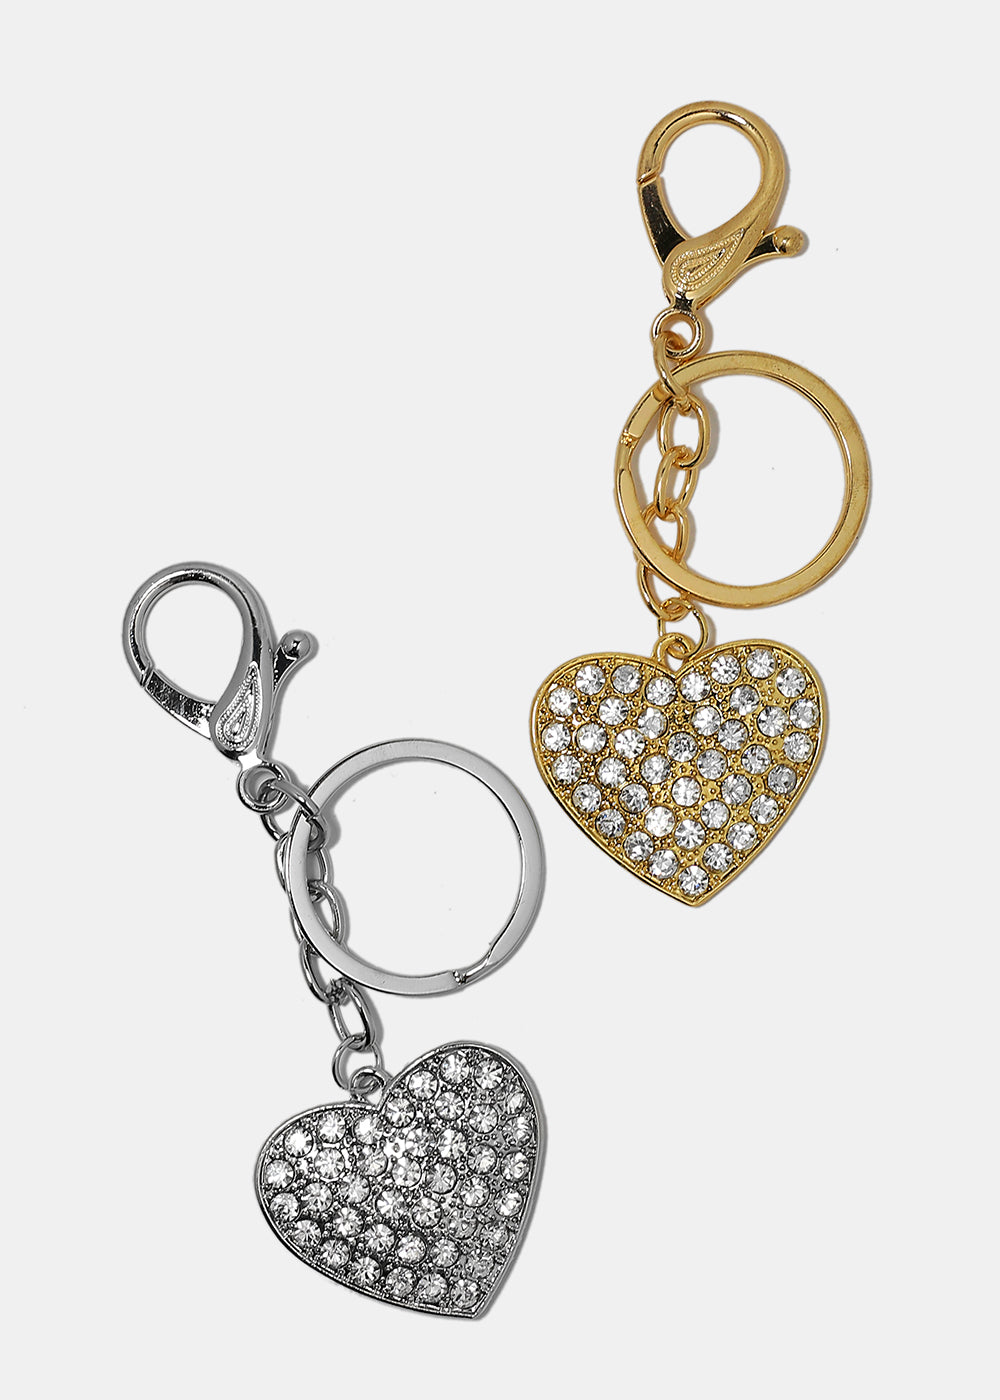 Gemstone Heart Keychain